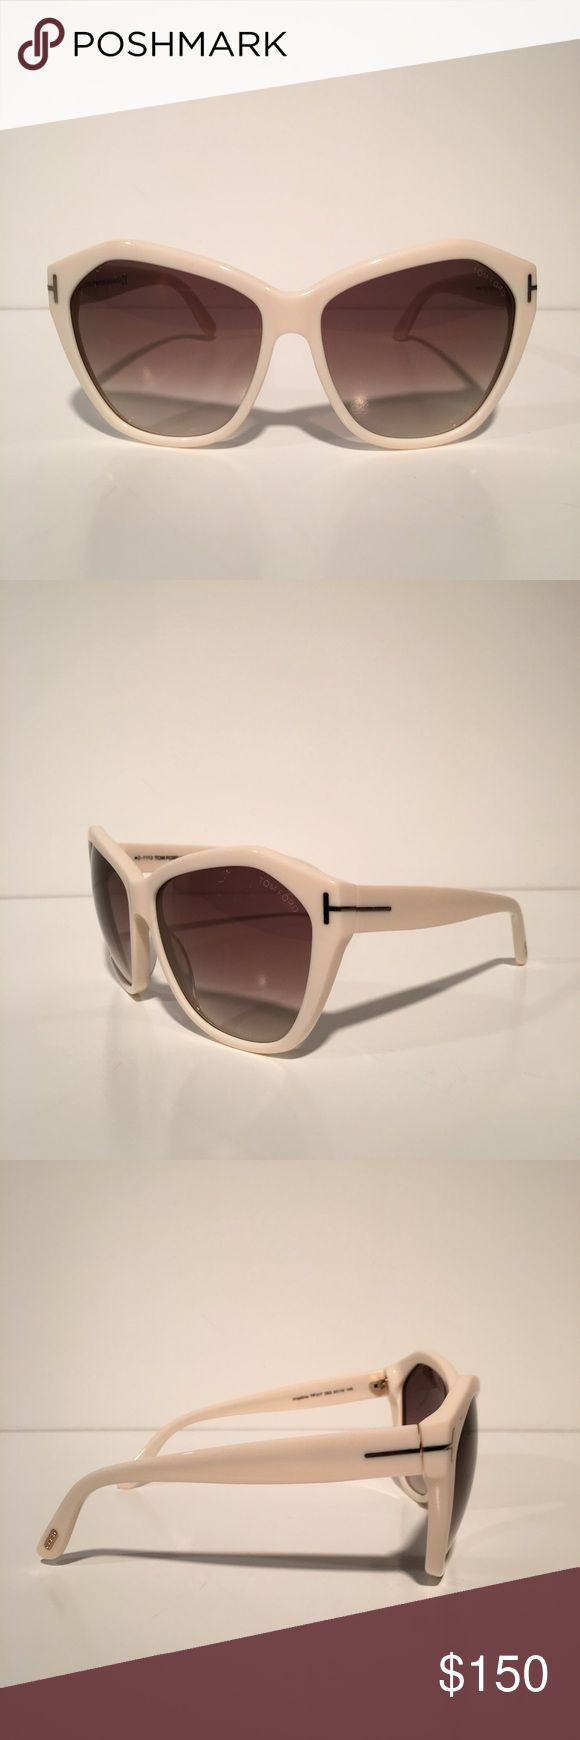 Tom Ford Angelina White Oval Sunglasses Brand New With Box And Cloth. Made In Italy Tom Ford Accessories Sunglasses